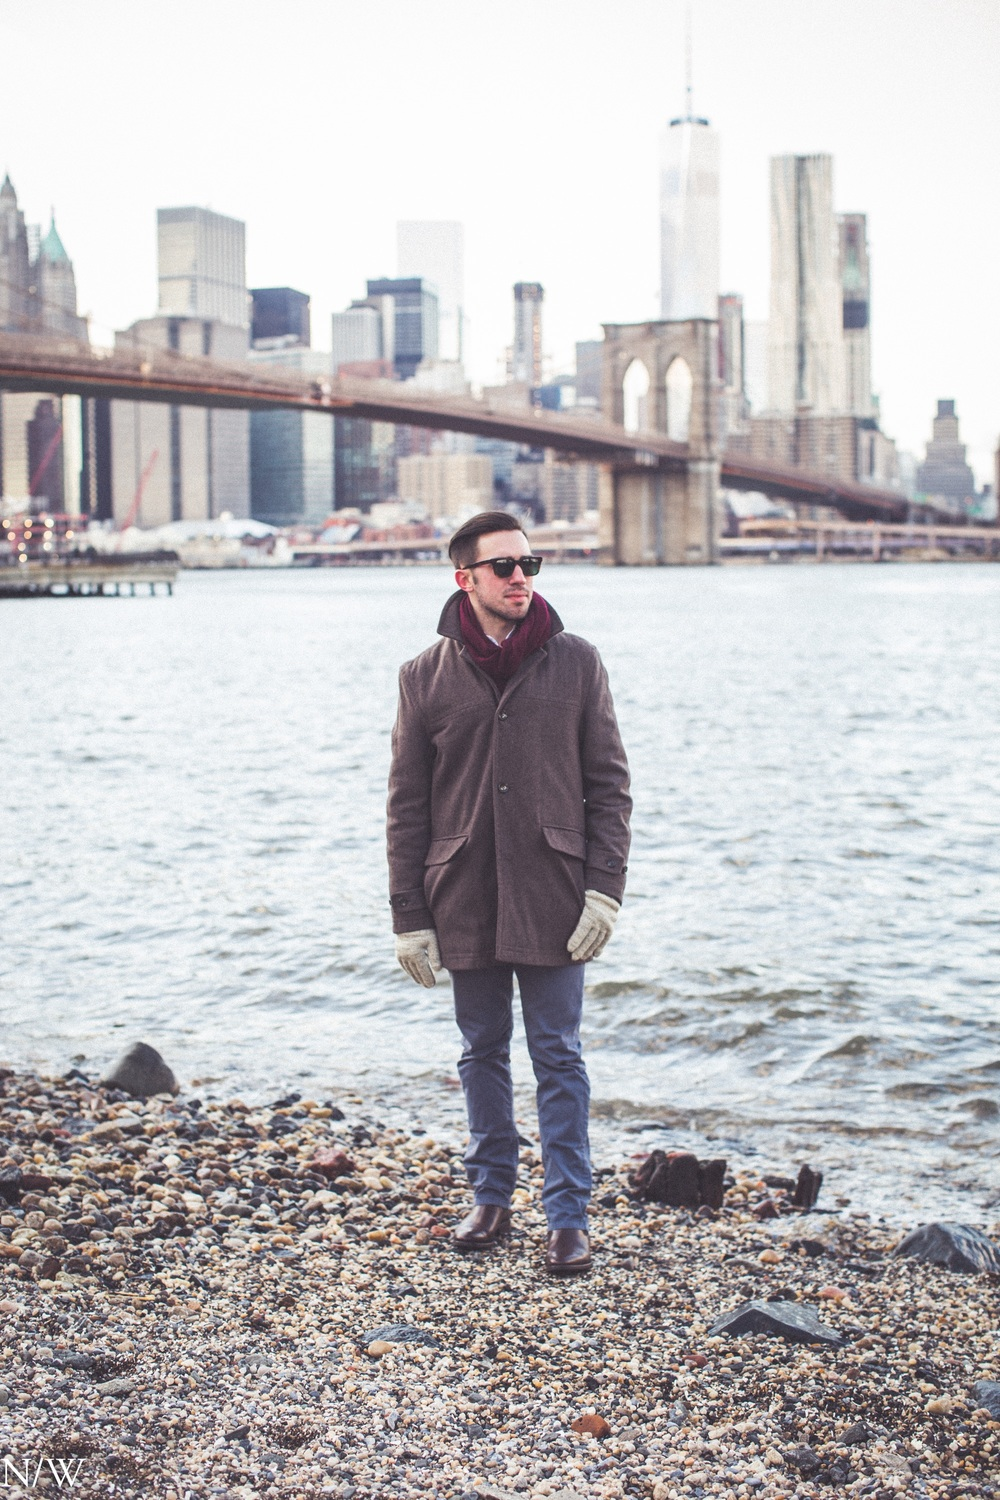 Sunglasses: Warby Parker | Scarf: H&M | Coat: London Fog | Pants: Billy Reid | Boots: Jack Erwin Photo by: Noah Williams